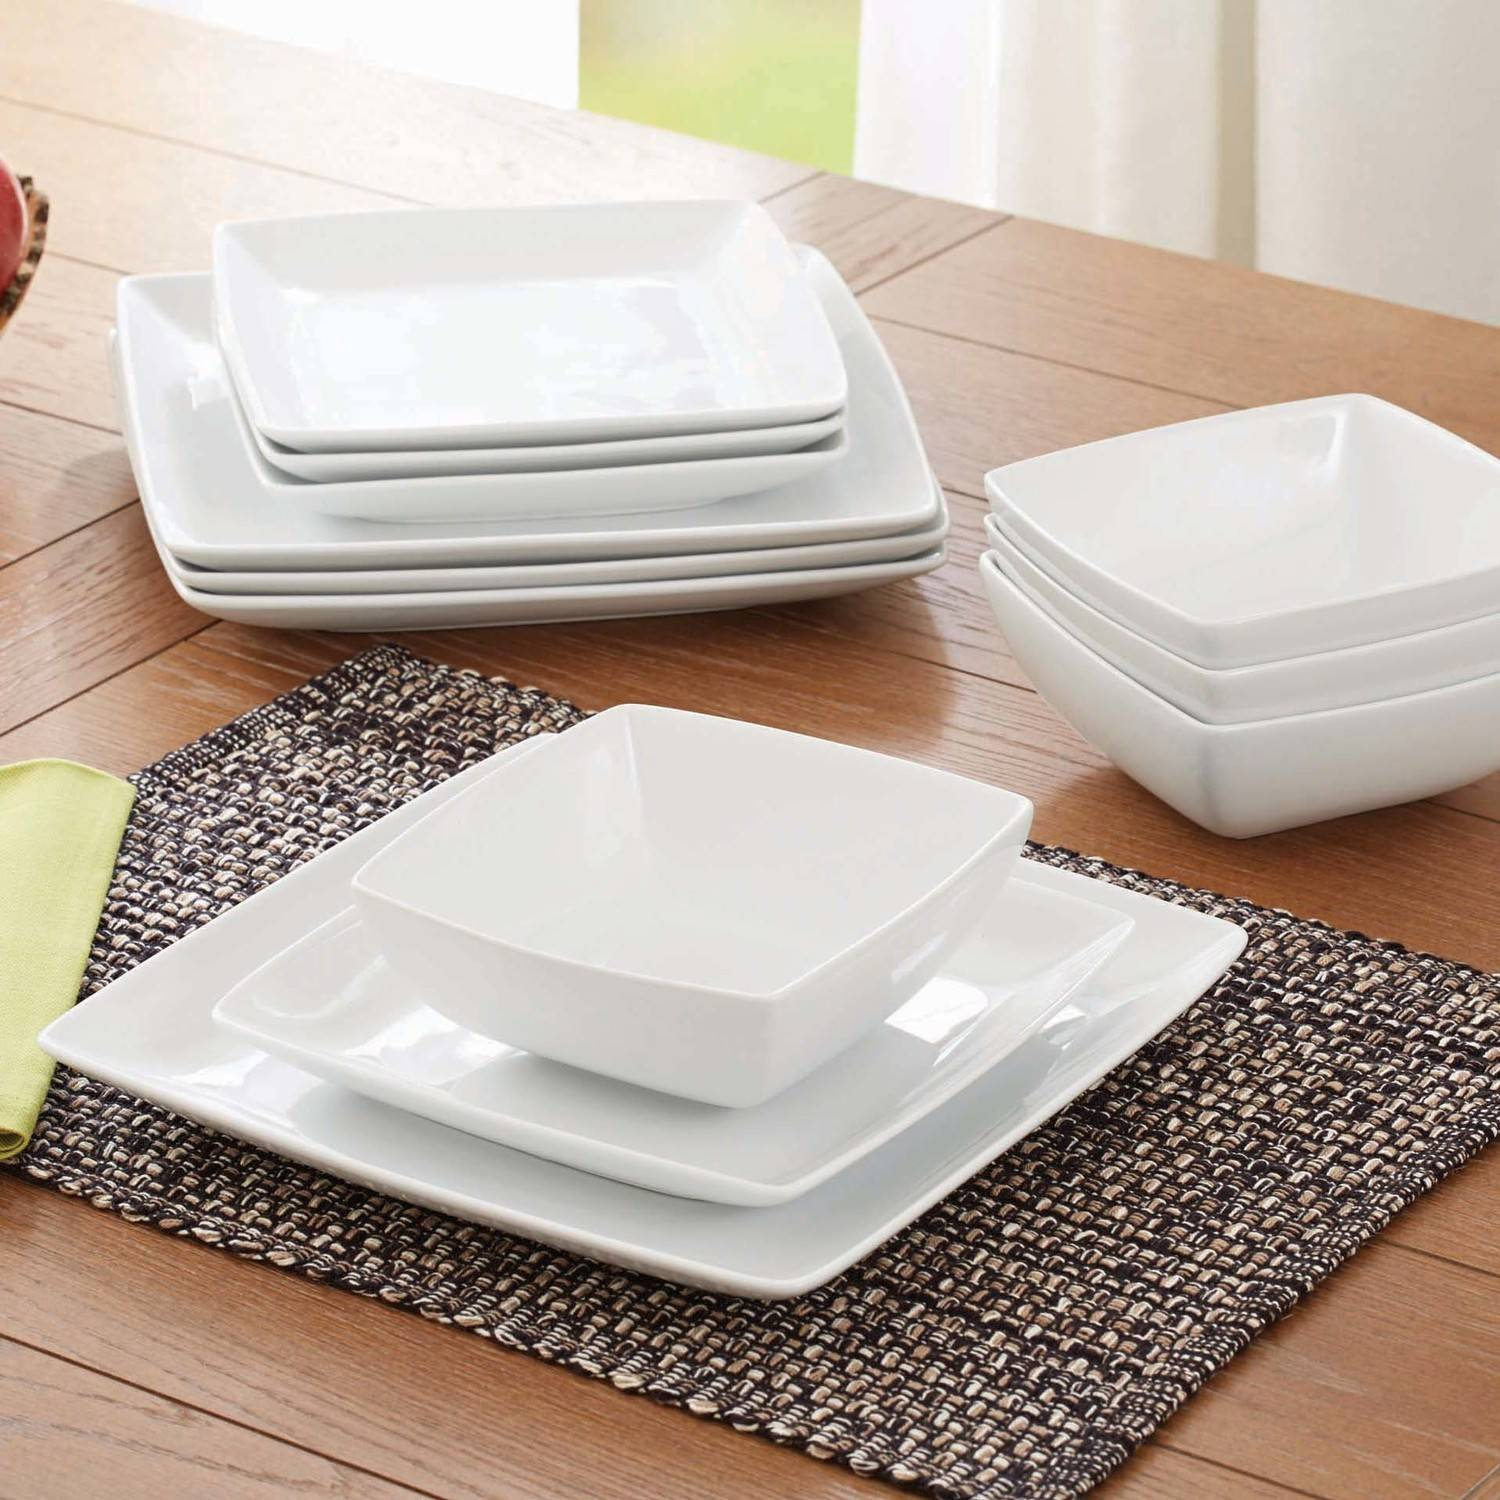 Better Homes and Gardens Coupe Square 12-Piece Dinnerware Set, White